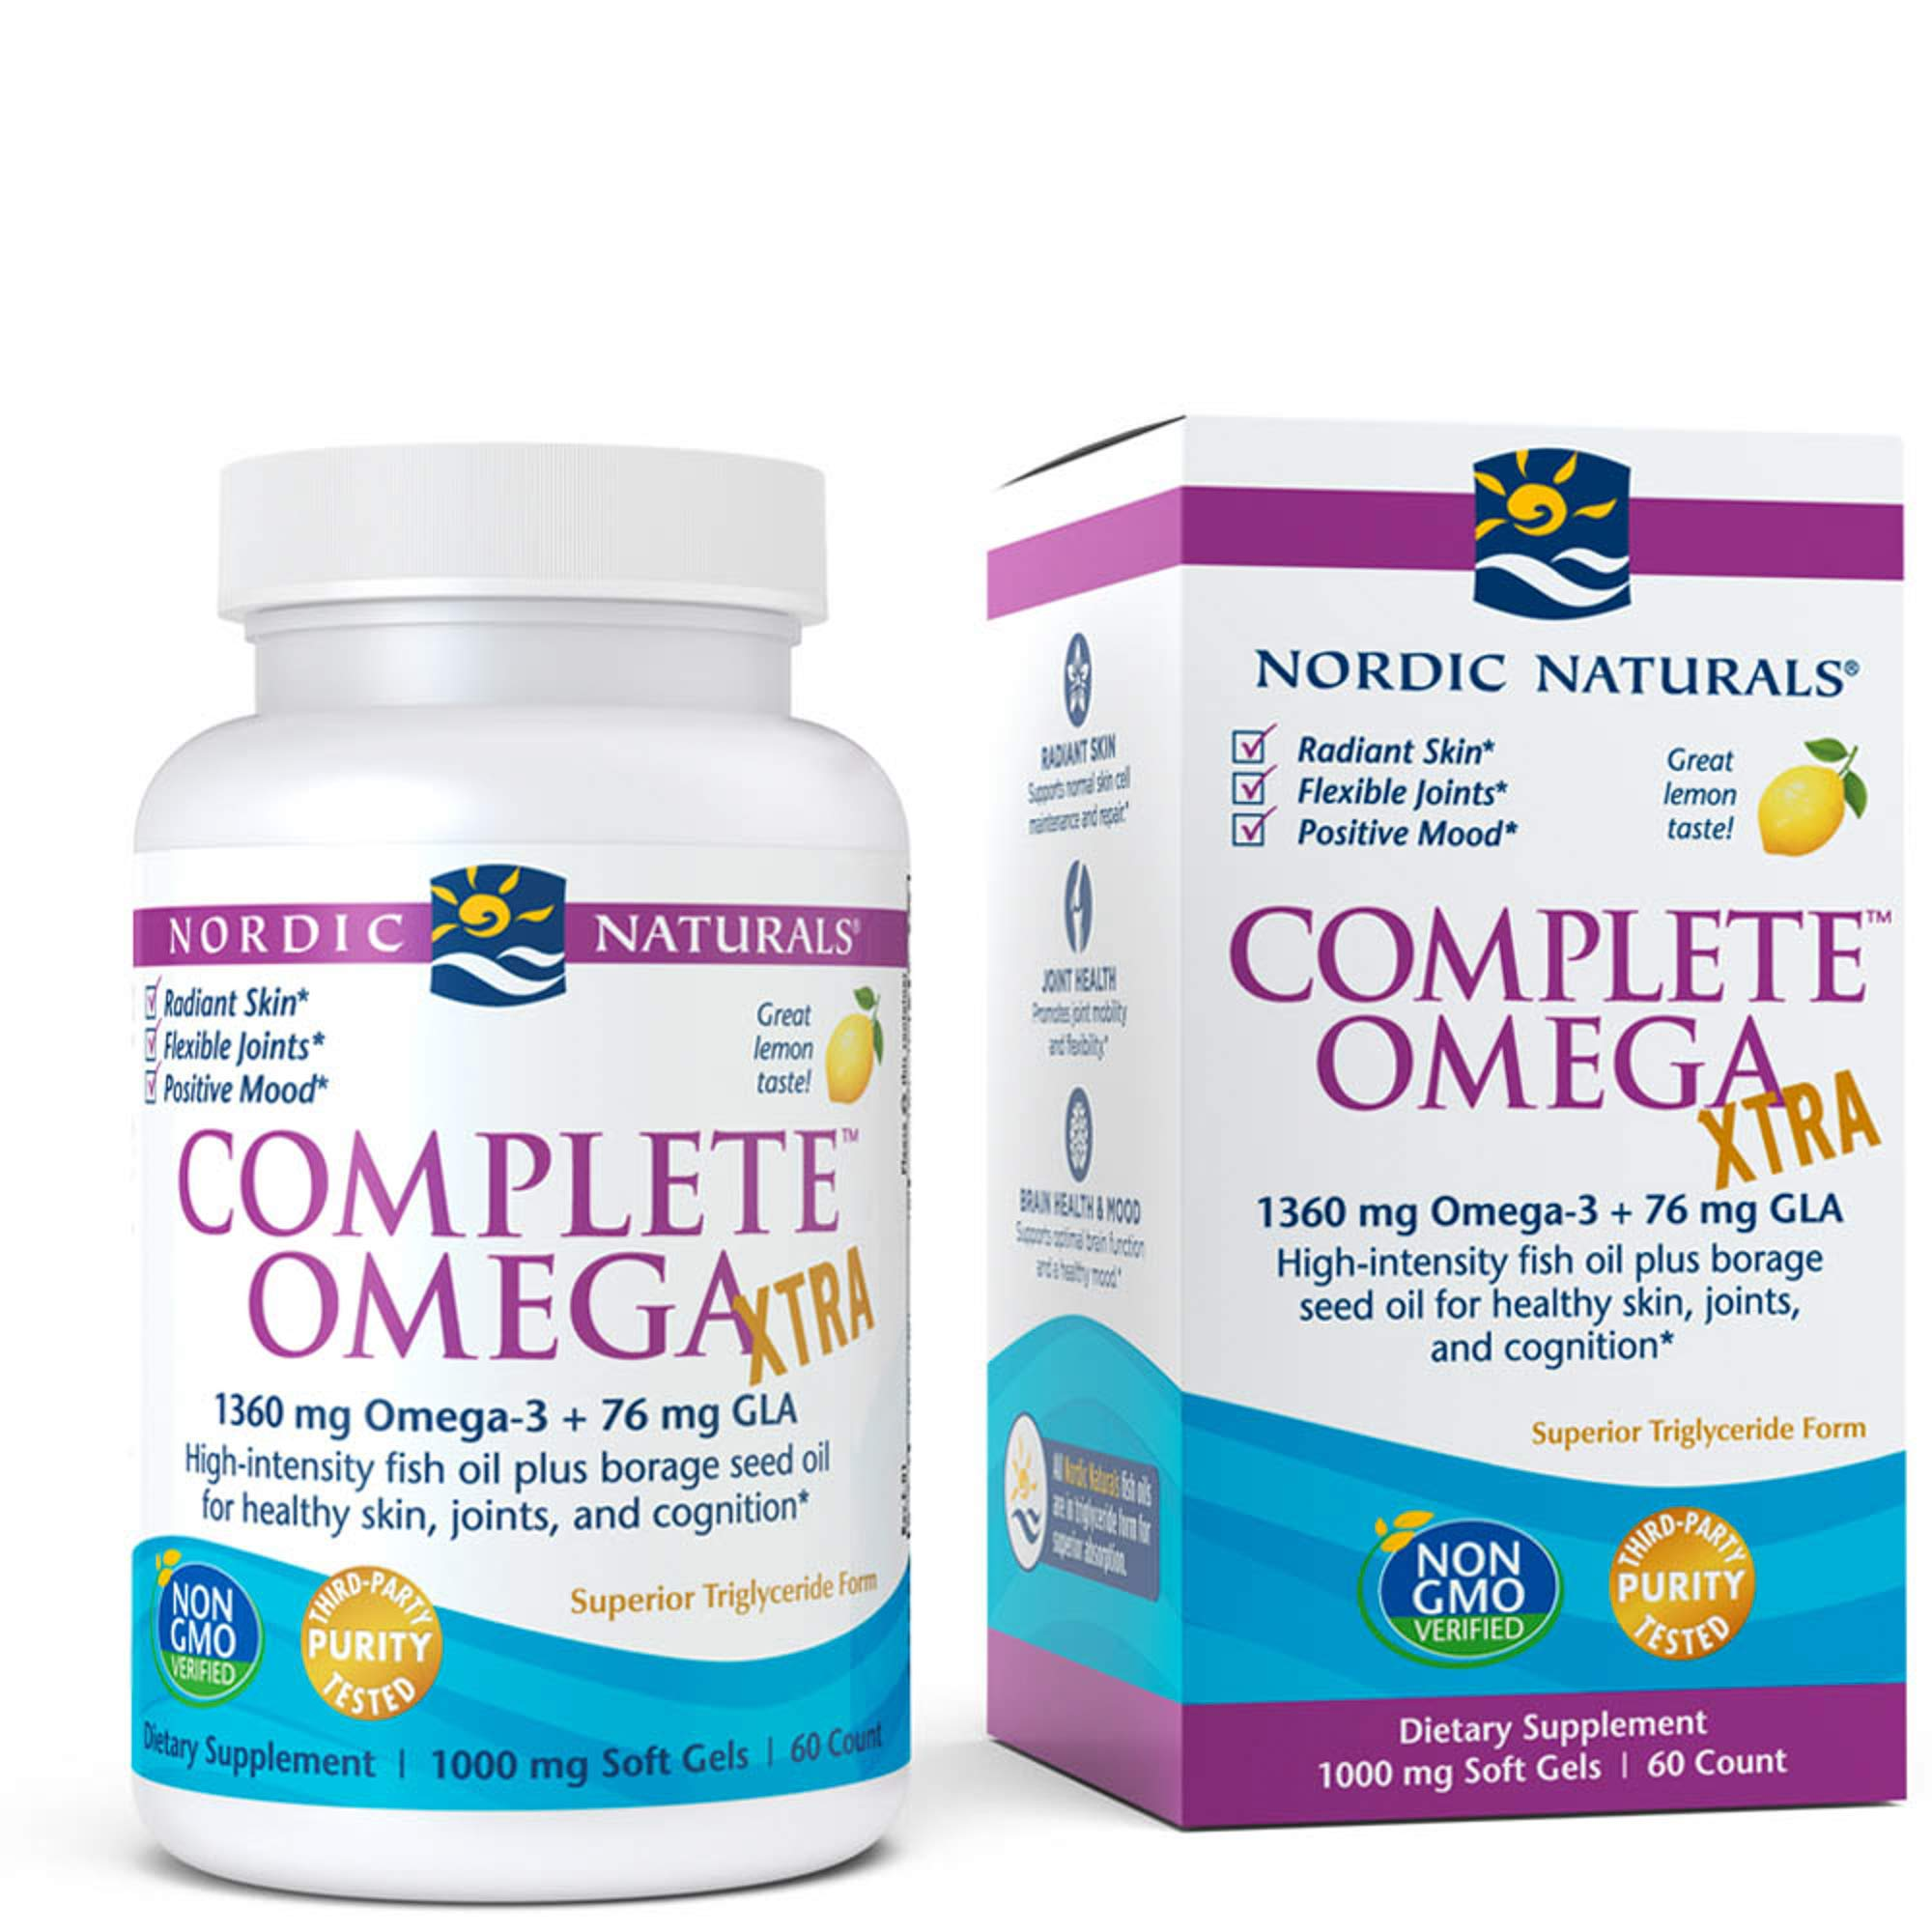 Nordic Naturals - Complete Omega Xtra, Optimal Support for Brain, Skin, Bones, and Joints, 60 Soft Gels (FFP) by Nordic Naturals